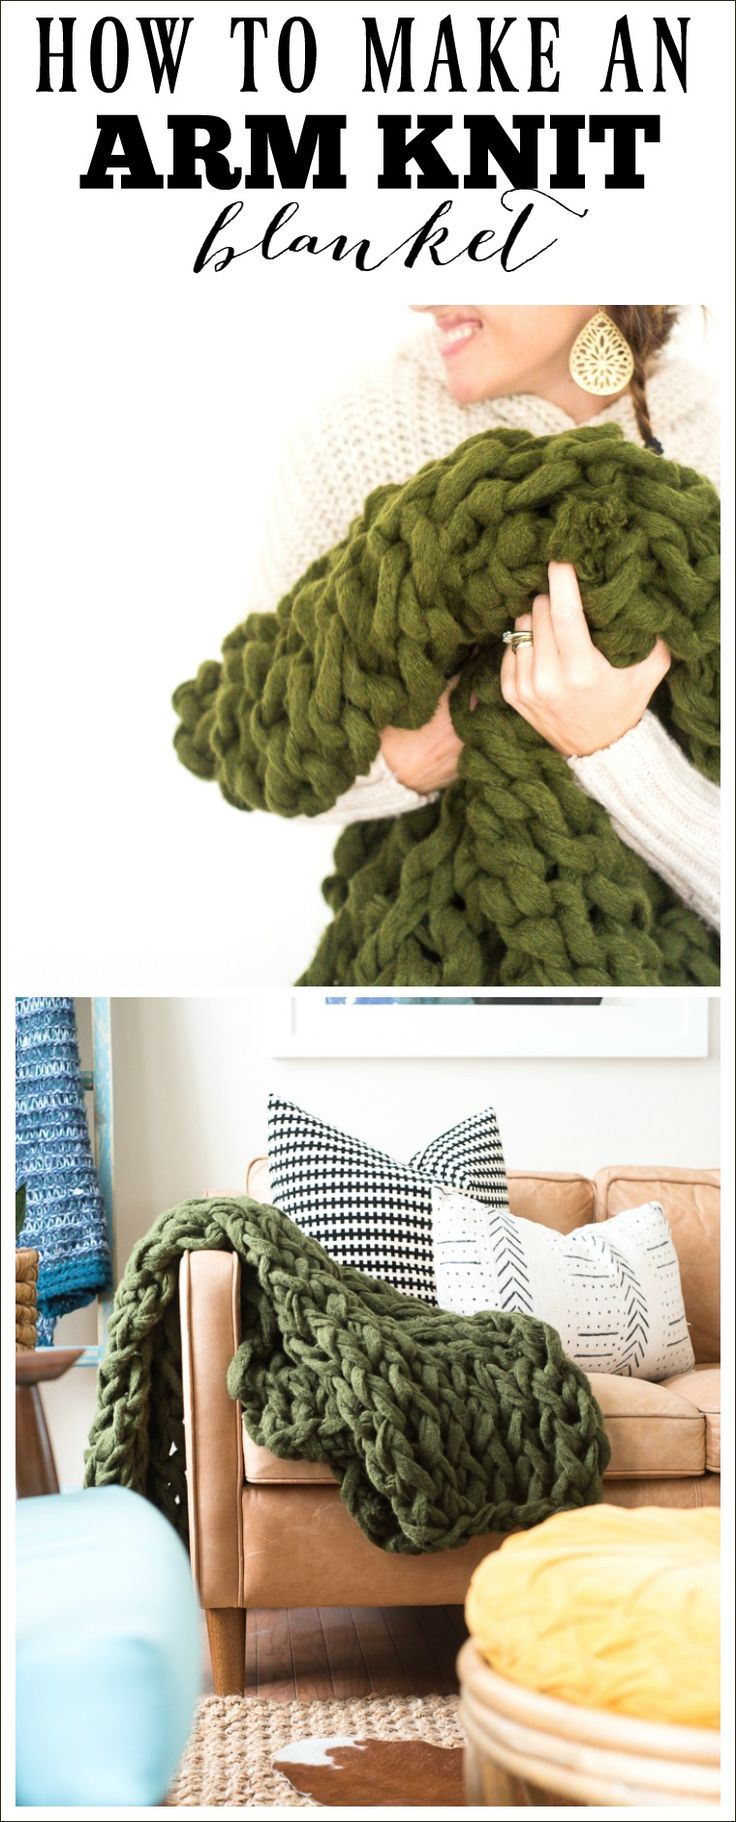 Learn how to make an arm knit blanket